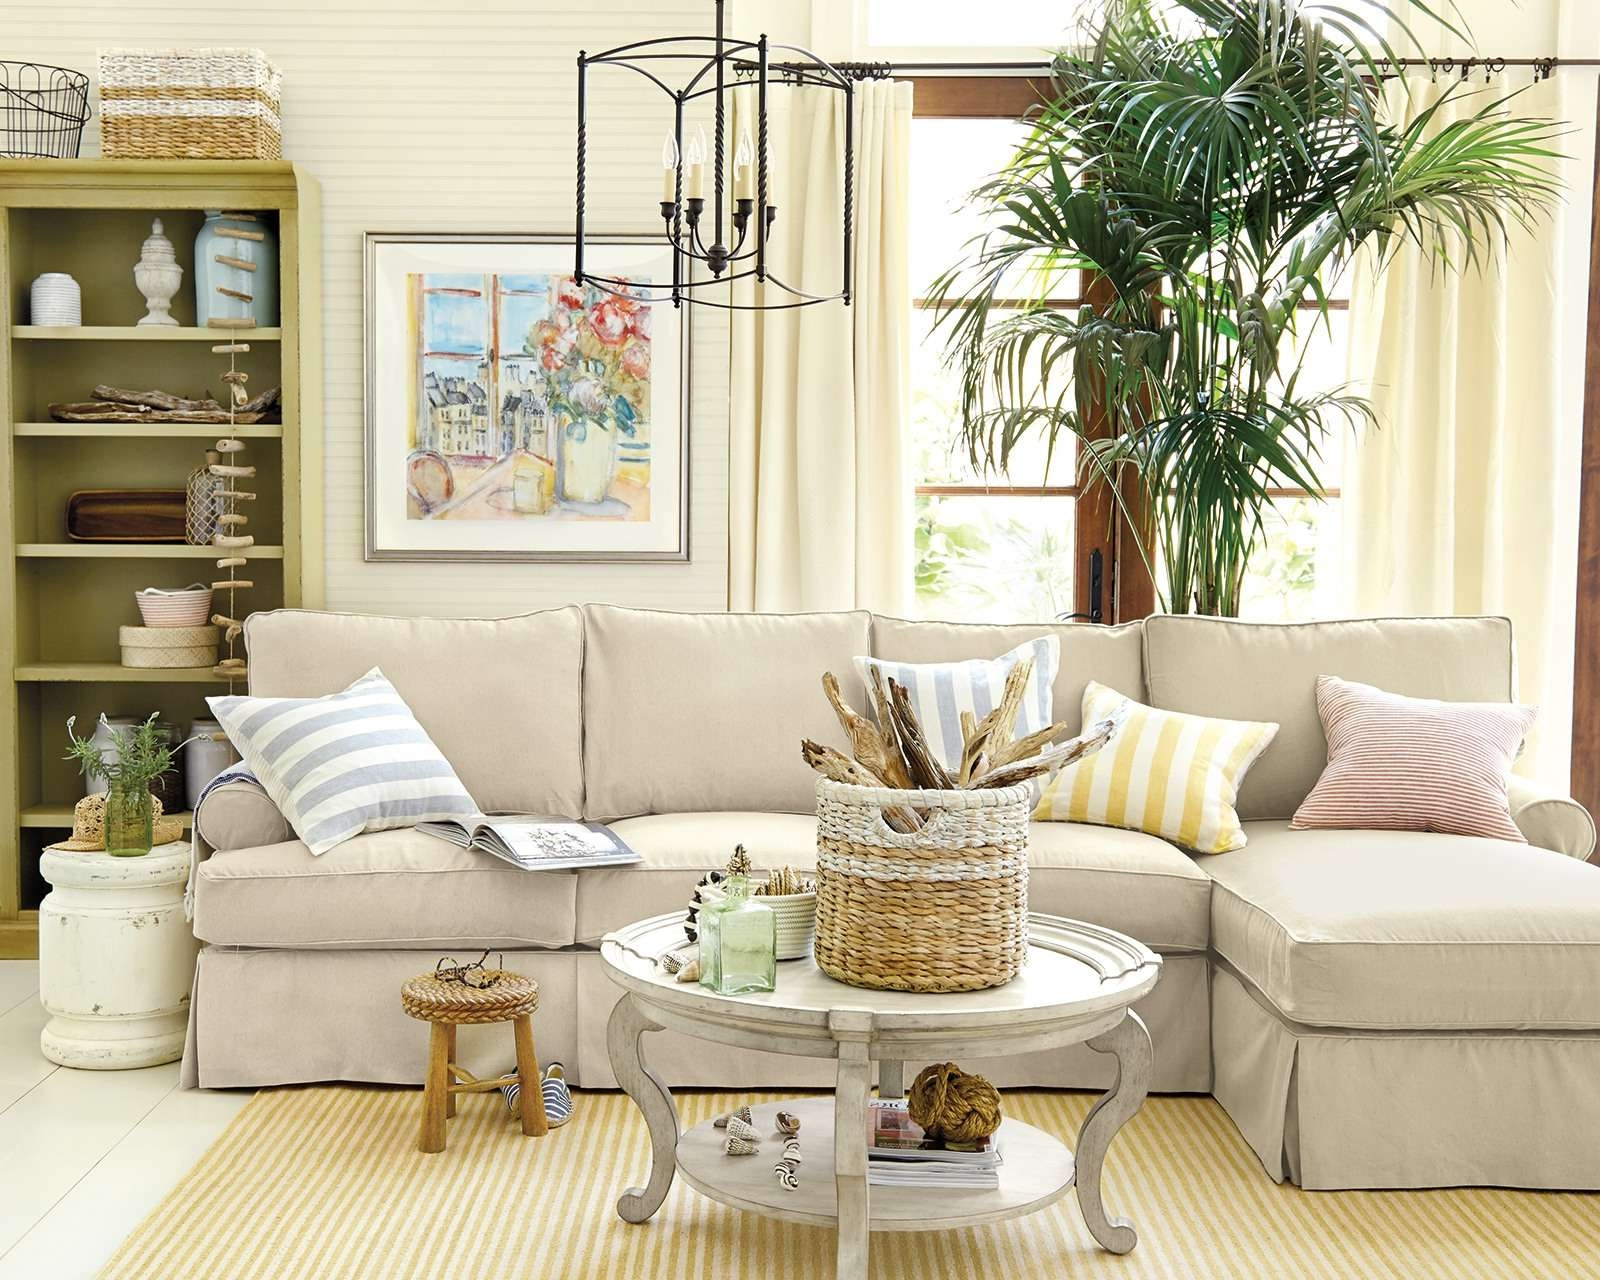 Most Popular Coffee Table For Sectional Sofa With Regard To How To Match A Coffee Table To Your Sectional – How To Decorate (View 11 of 20)